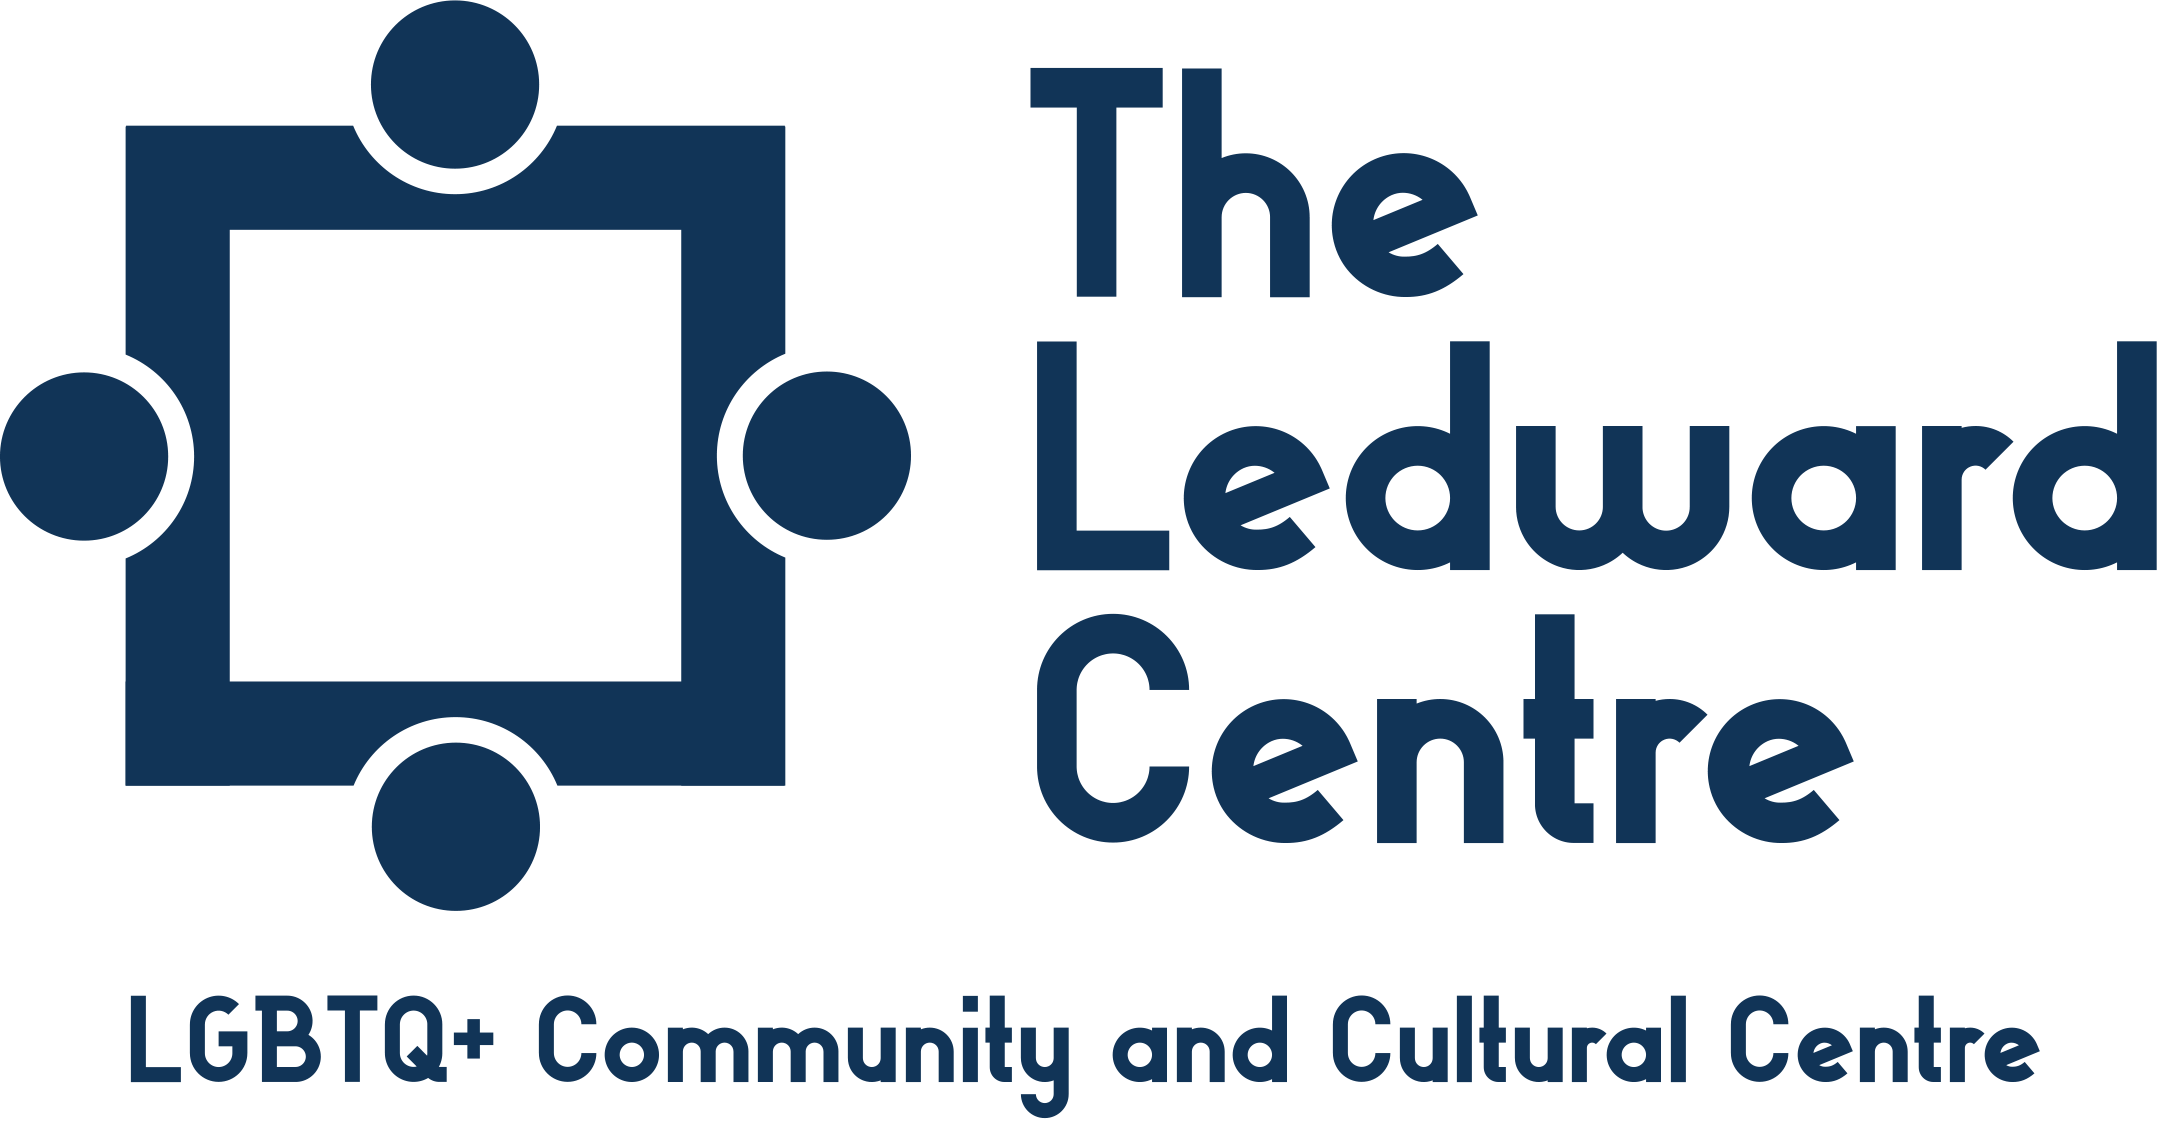 The Ledward Centre, LGBTQ+ Community and Cultural Centre